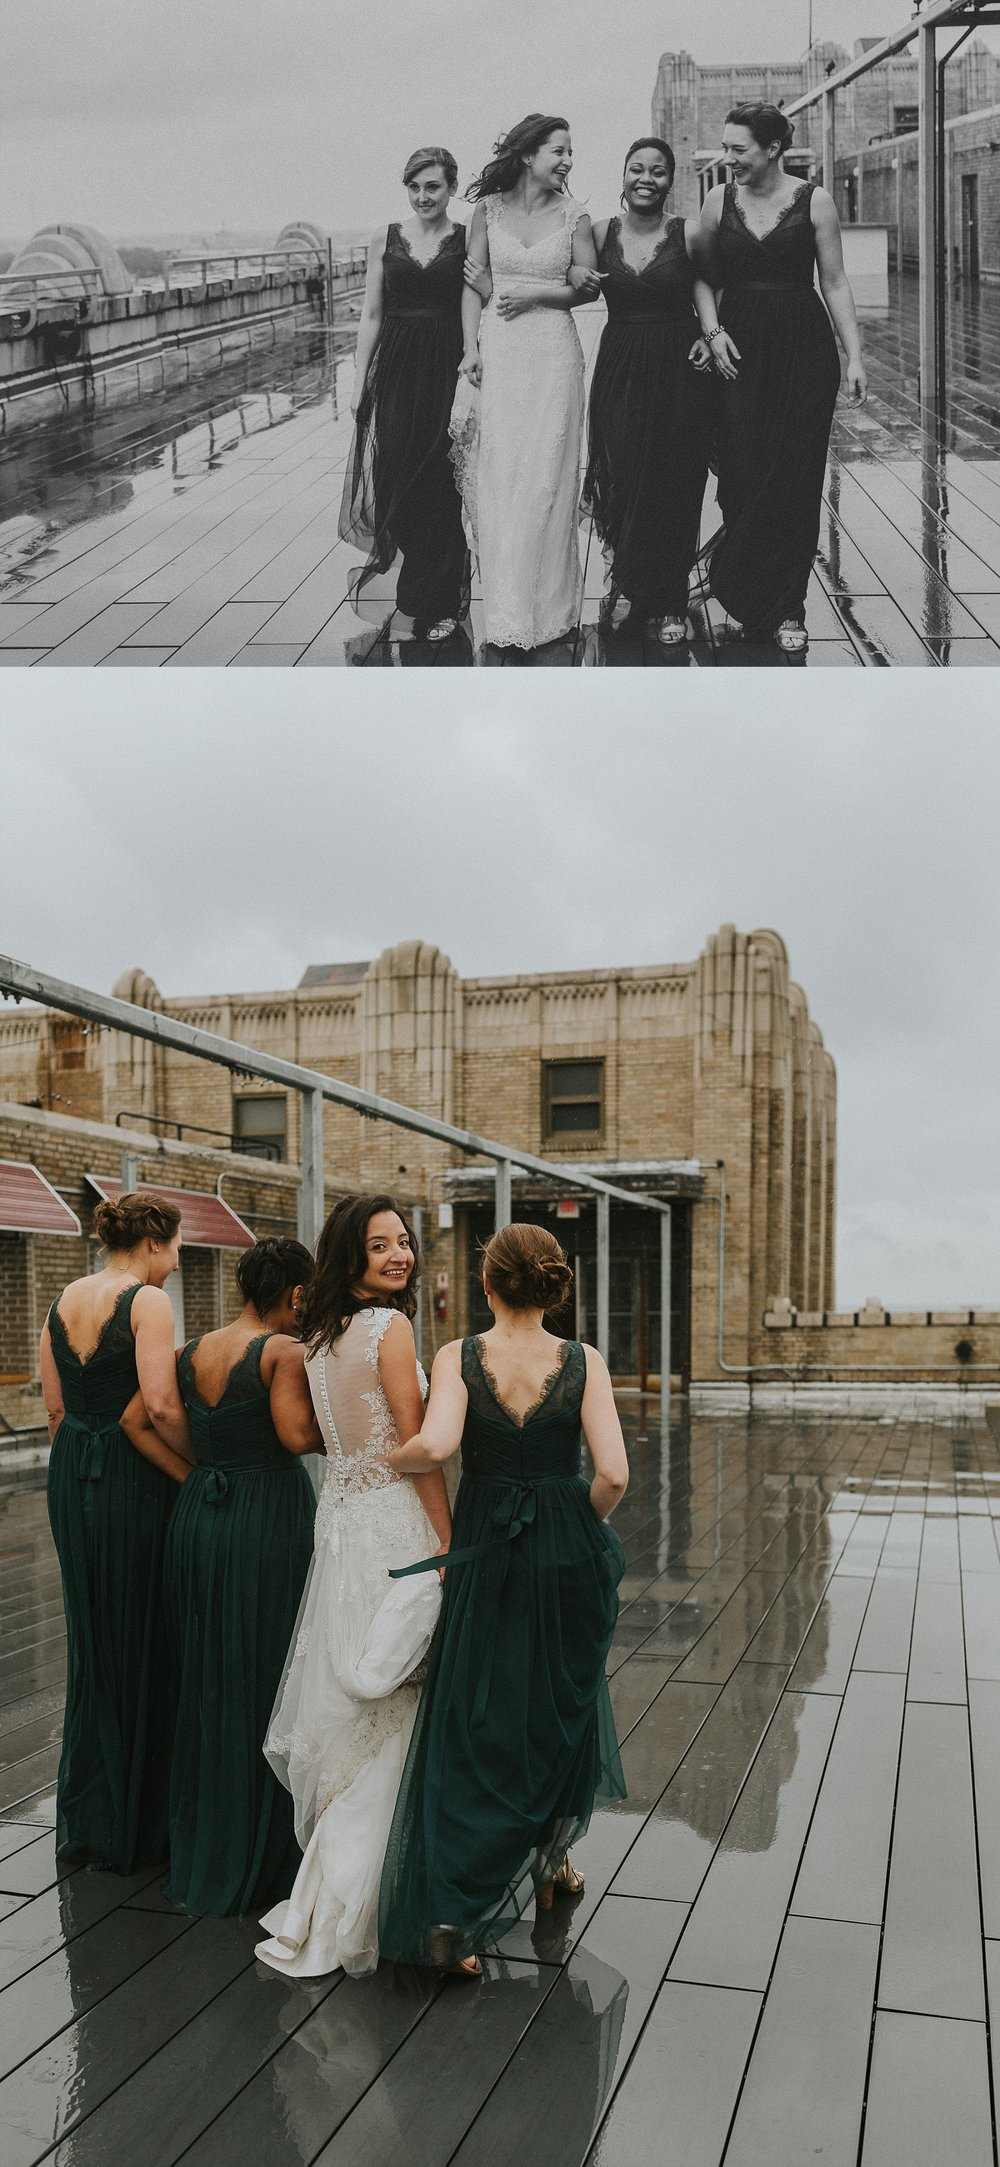 Bridesmaids for wedding in Philadelphia Pennsylvania at Old St. Mary's Church and Building BOK